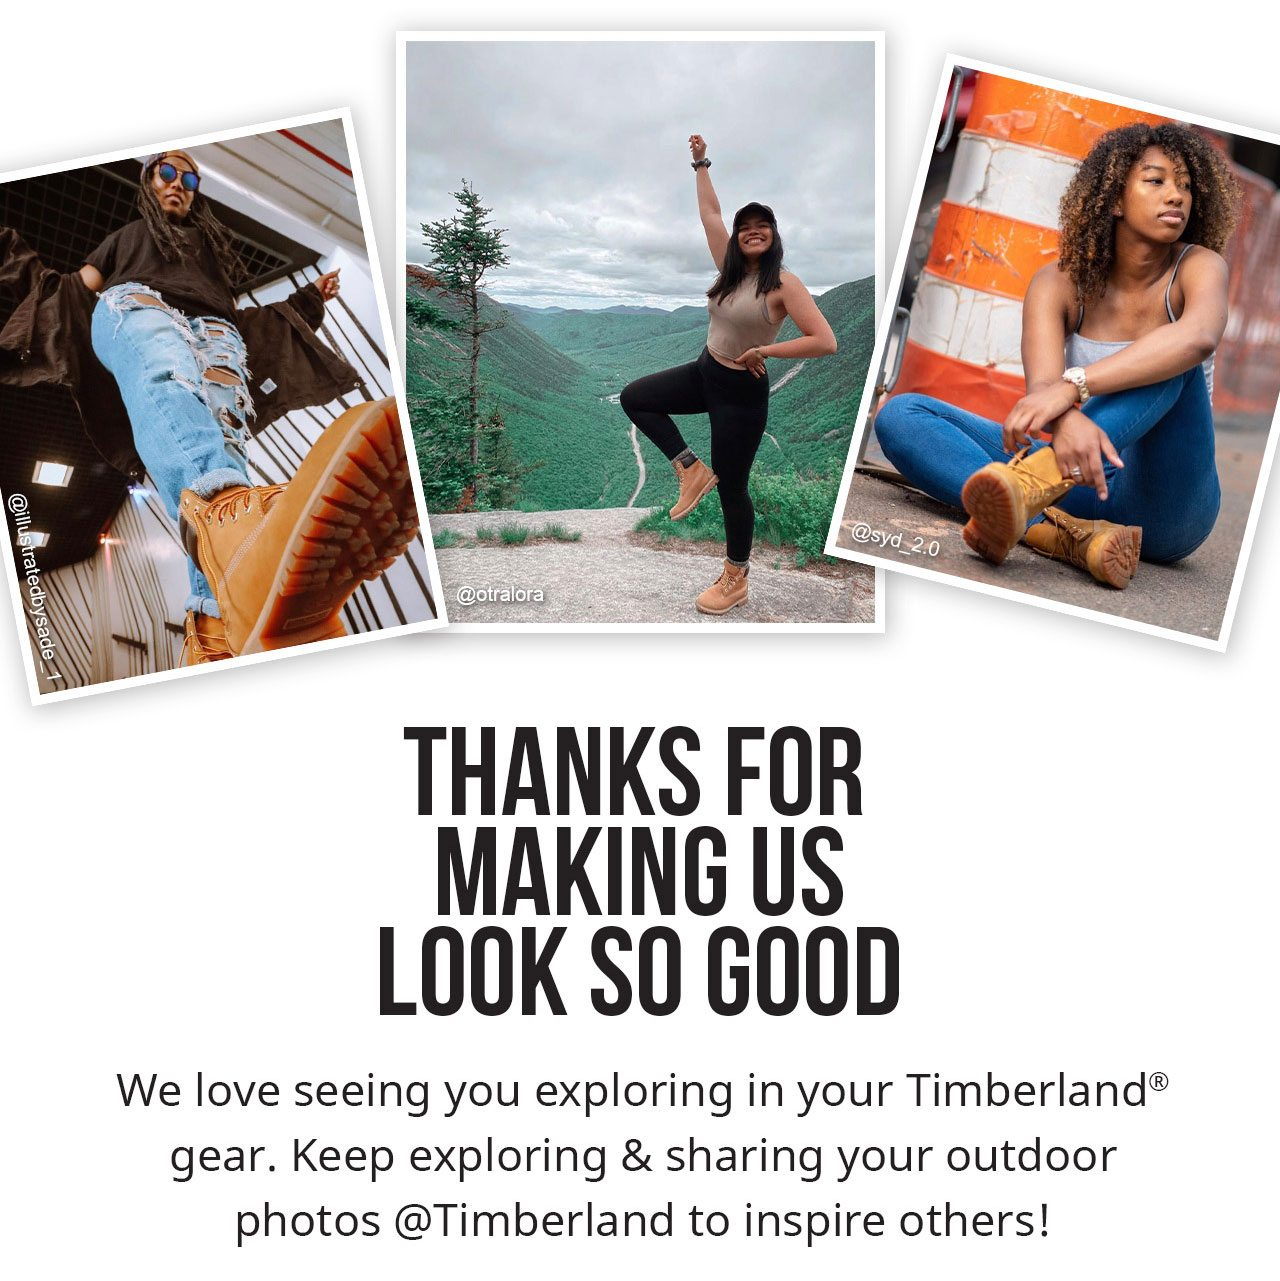 THANKS FOR MAKING US LOOK SO GOOD. We love seeing you exploring in your Timberland gear. Keep exploring & sharing your outdoor photos @Timberland to inspire others!